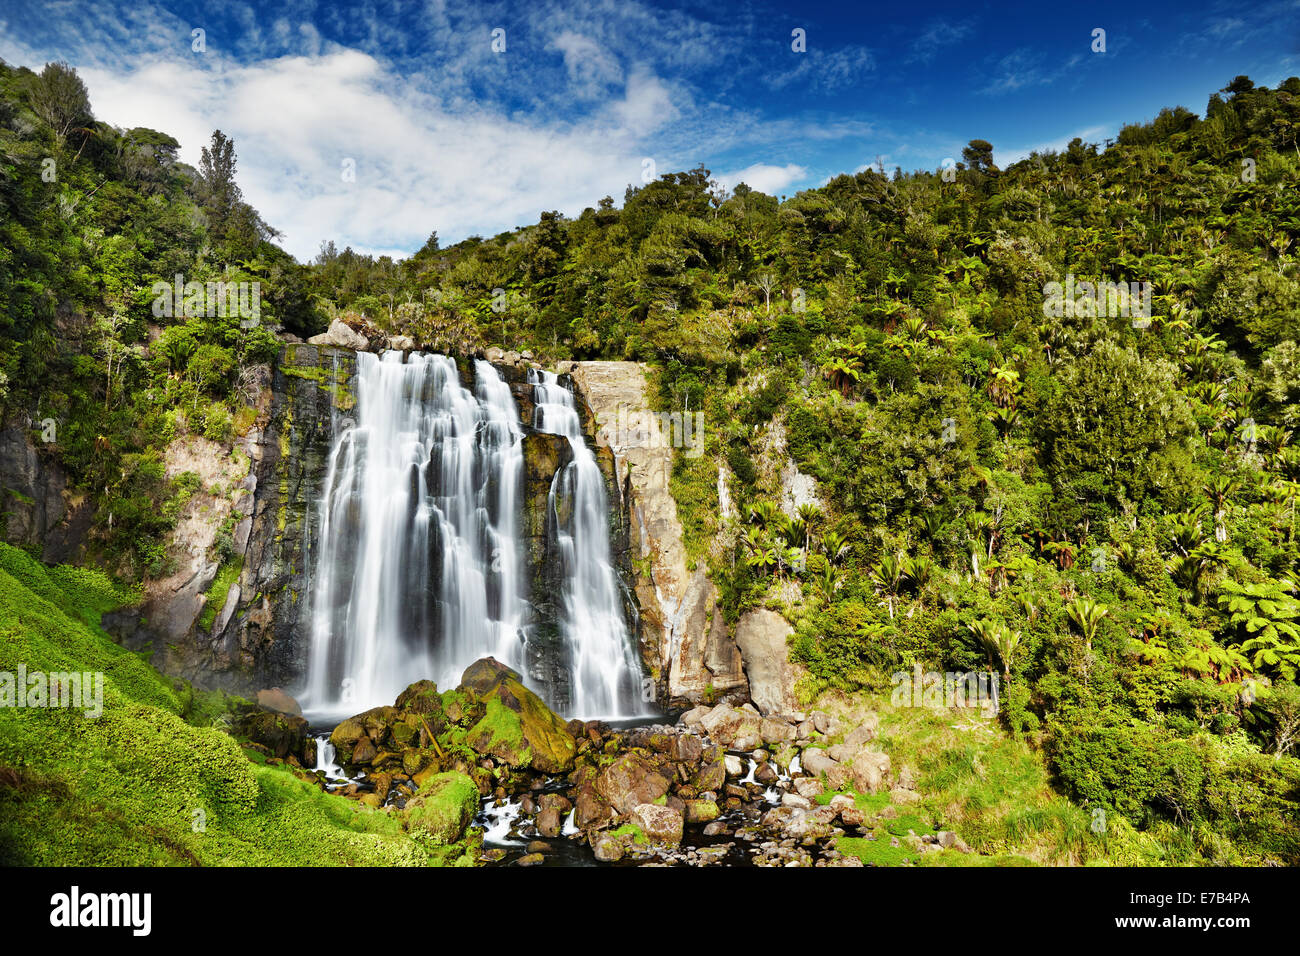 Marokopa Falls, North Island, New Zealand - Stock Image